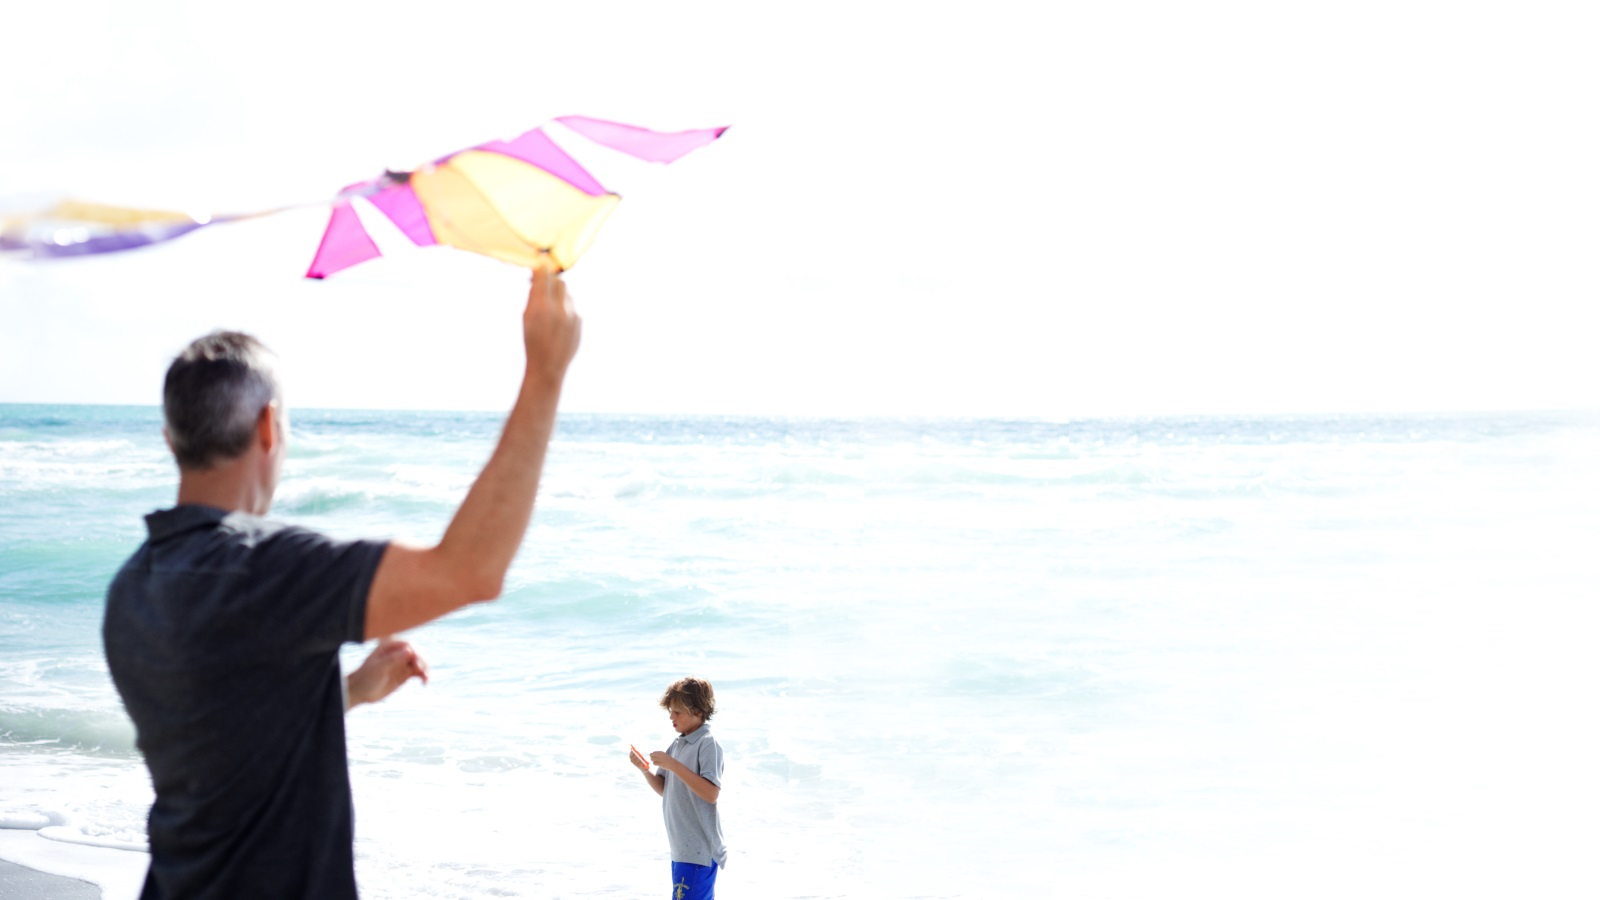 Flying Kite | Westin Hilton Head Island Resort & Spa